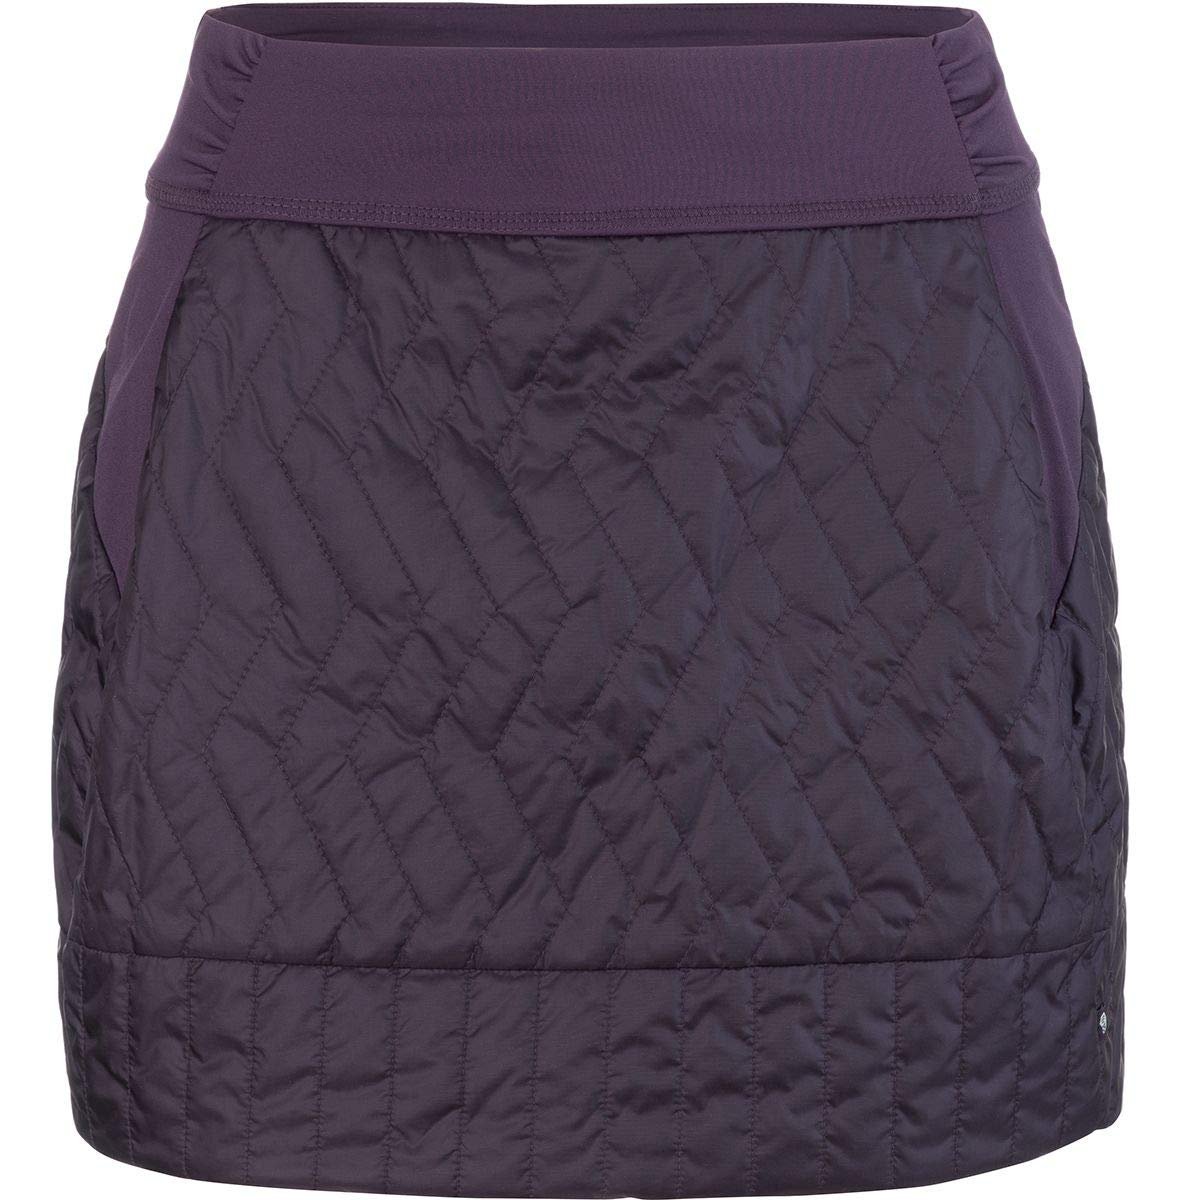 Mountain Hardwear Women's Trekkin Insulated Mini Skirt, Darkest Dawn, Medium by Mountain Hardwear